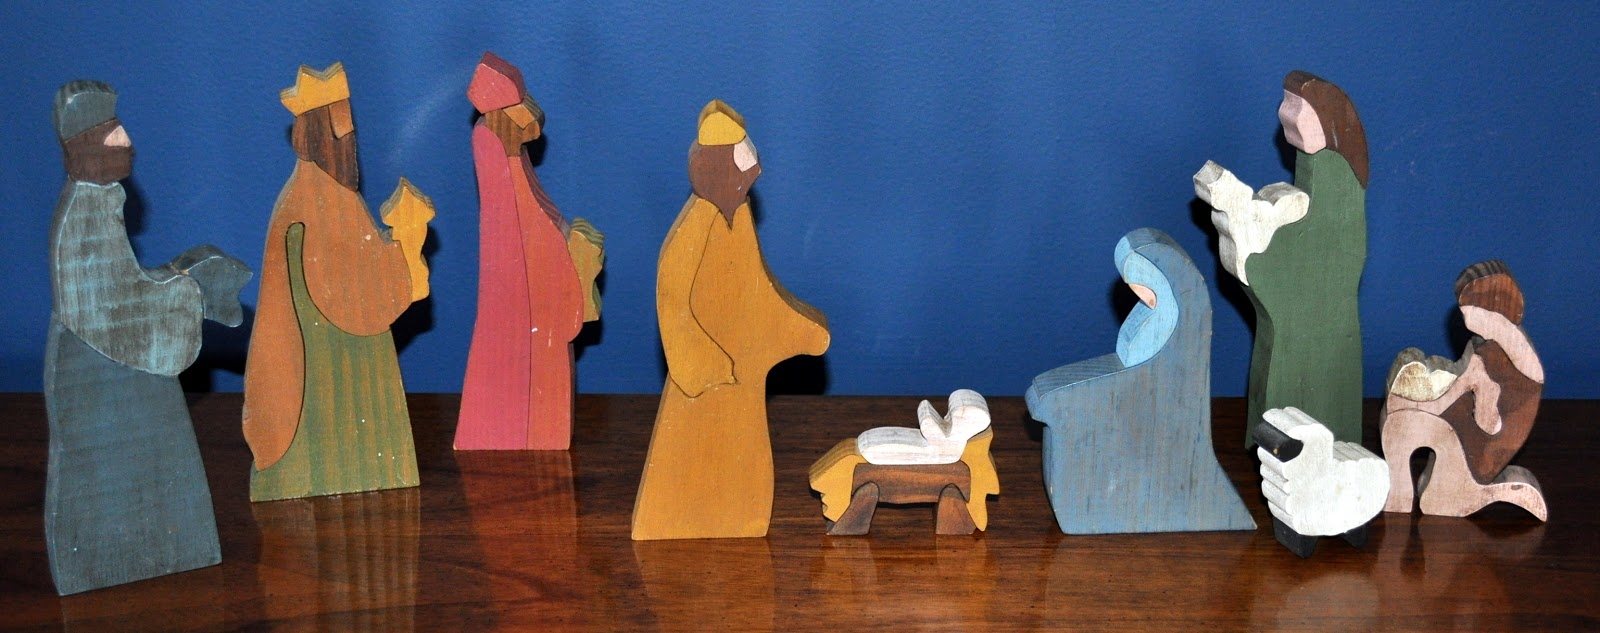 Our family christmas nativity scenes blogging for the for Nativity cut out patterns wood